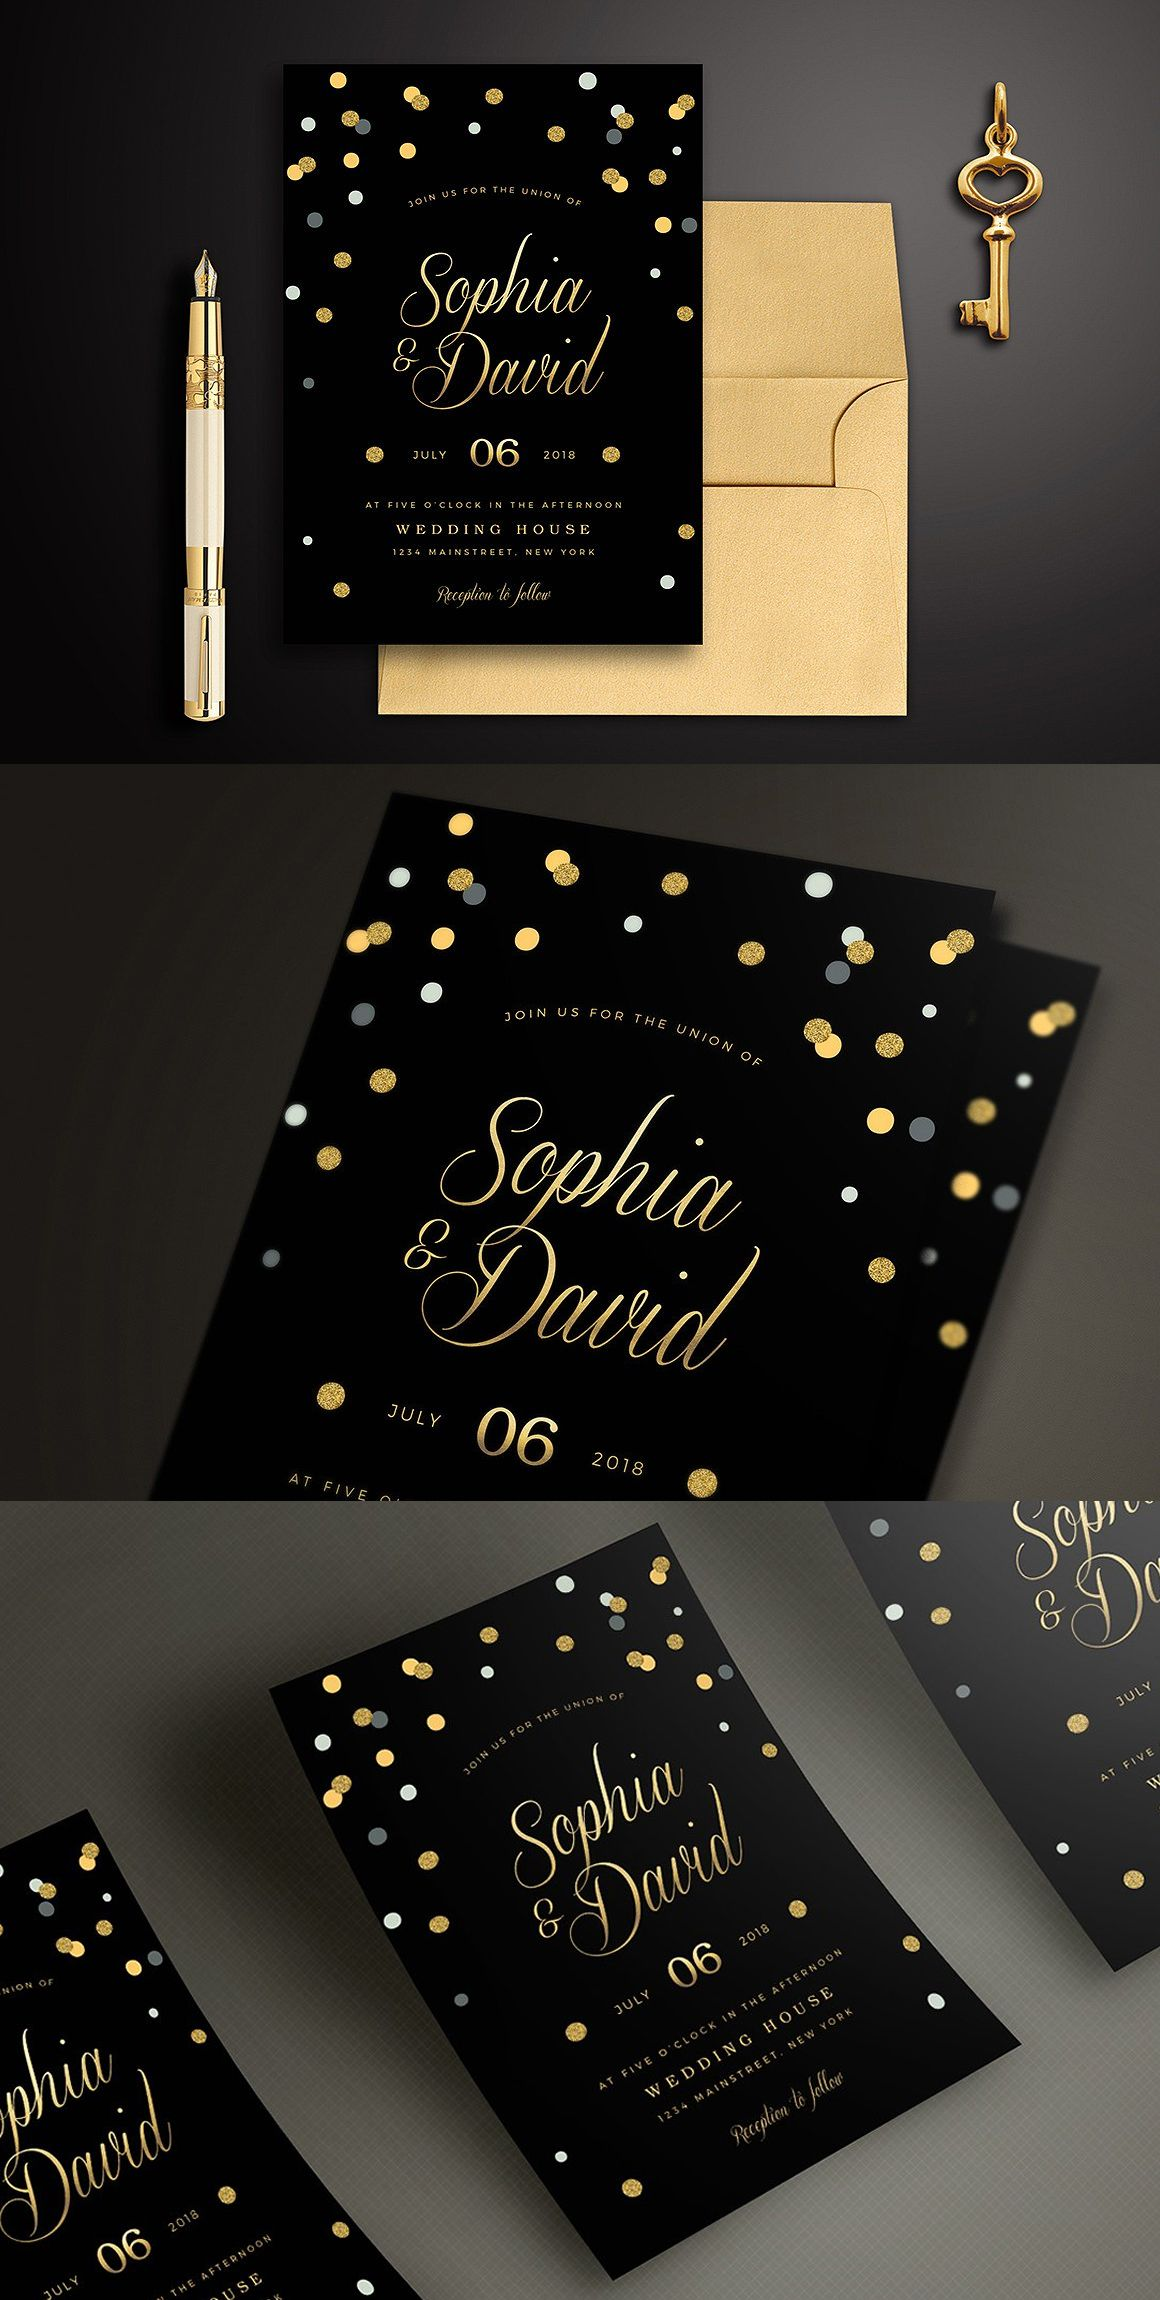 Black & Gold Wedding Invitation | Wedding invitation cards, Wedding  invitation card design, Gold wedding invitations